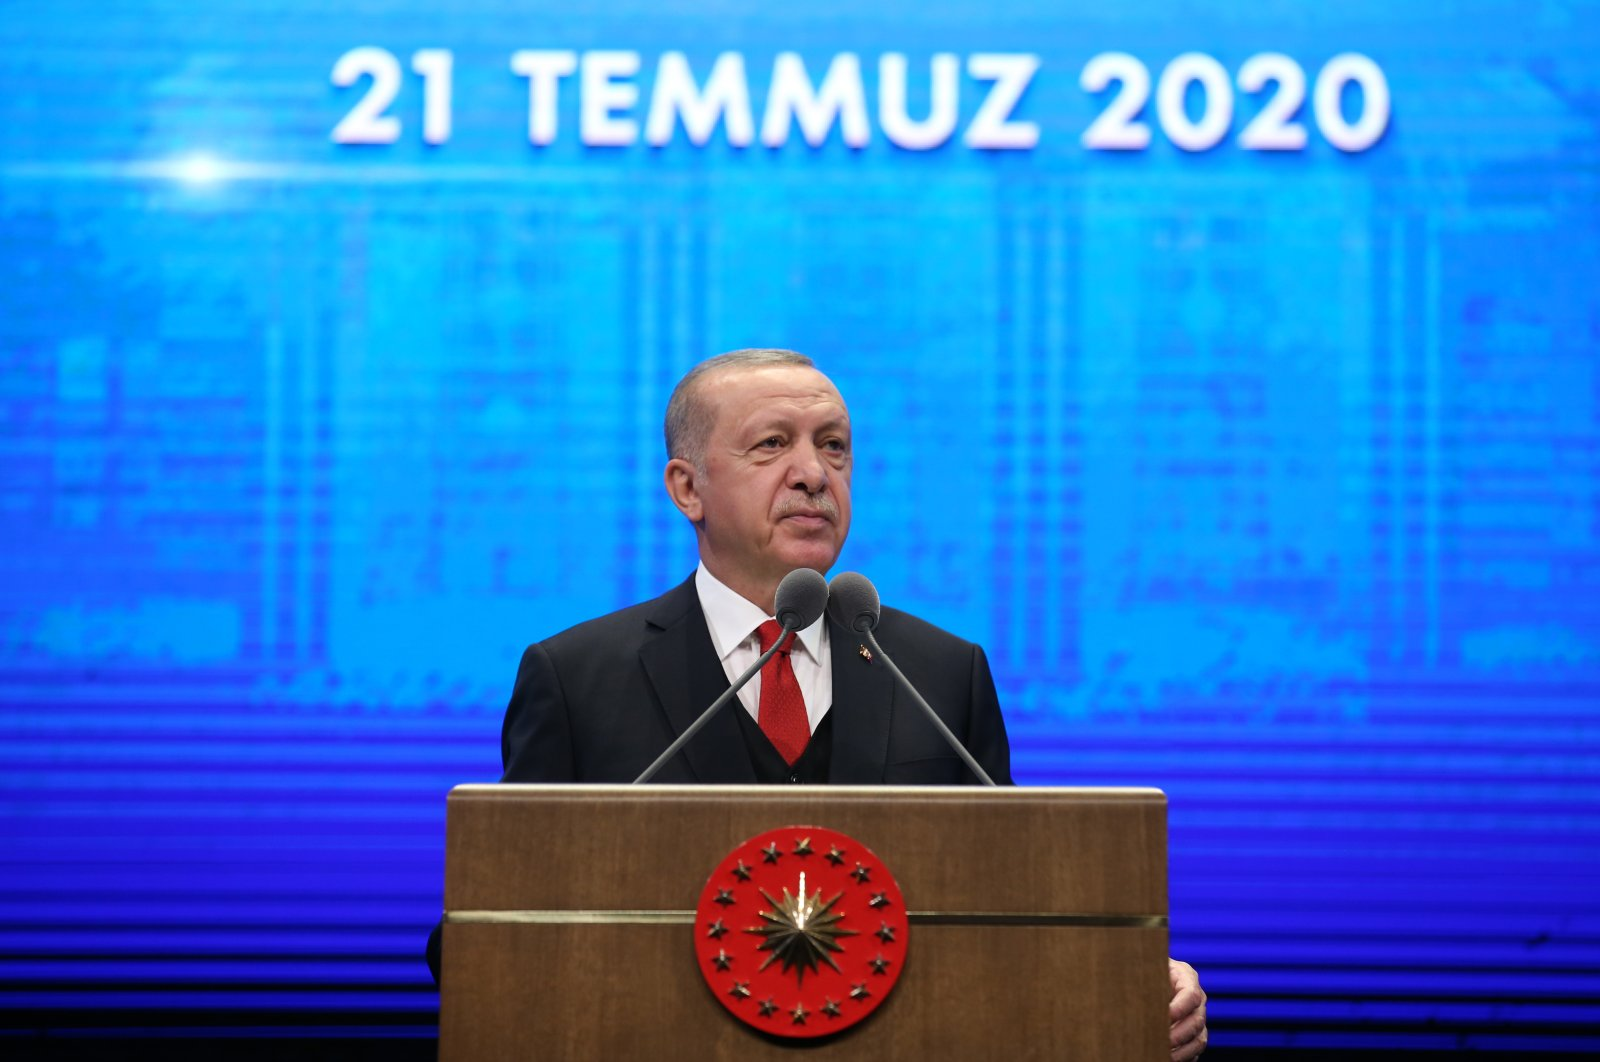 President Recep Tayyip Erdoğan speaks during the 2-Year Presidential Government System Evaluation Meeting at the Presidential Complex in the capital Ankara, July 21, 2020. (AA Photo)